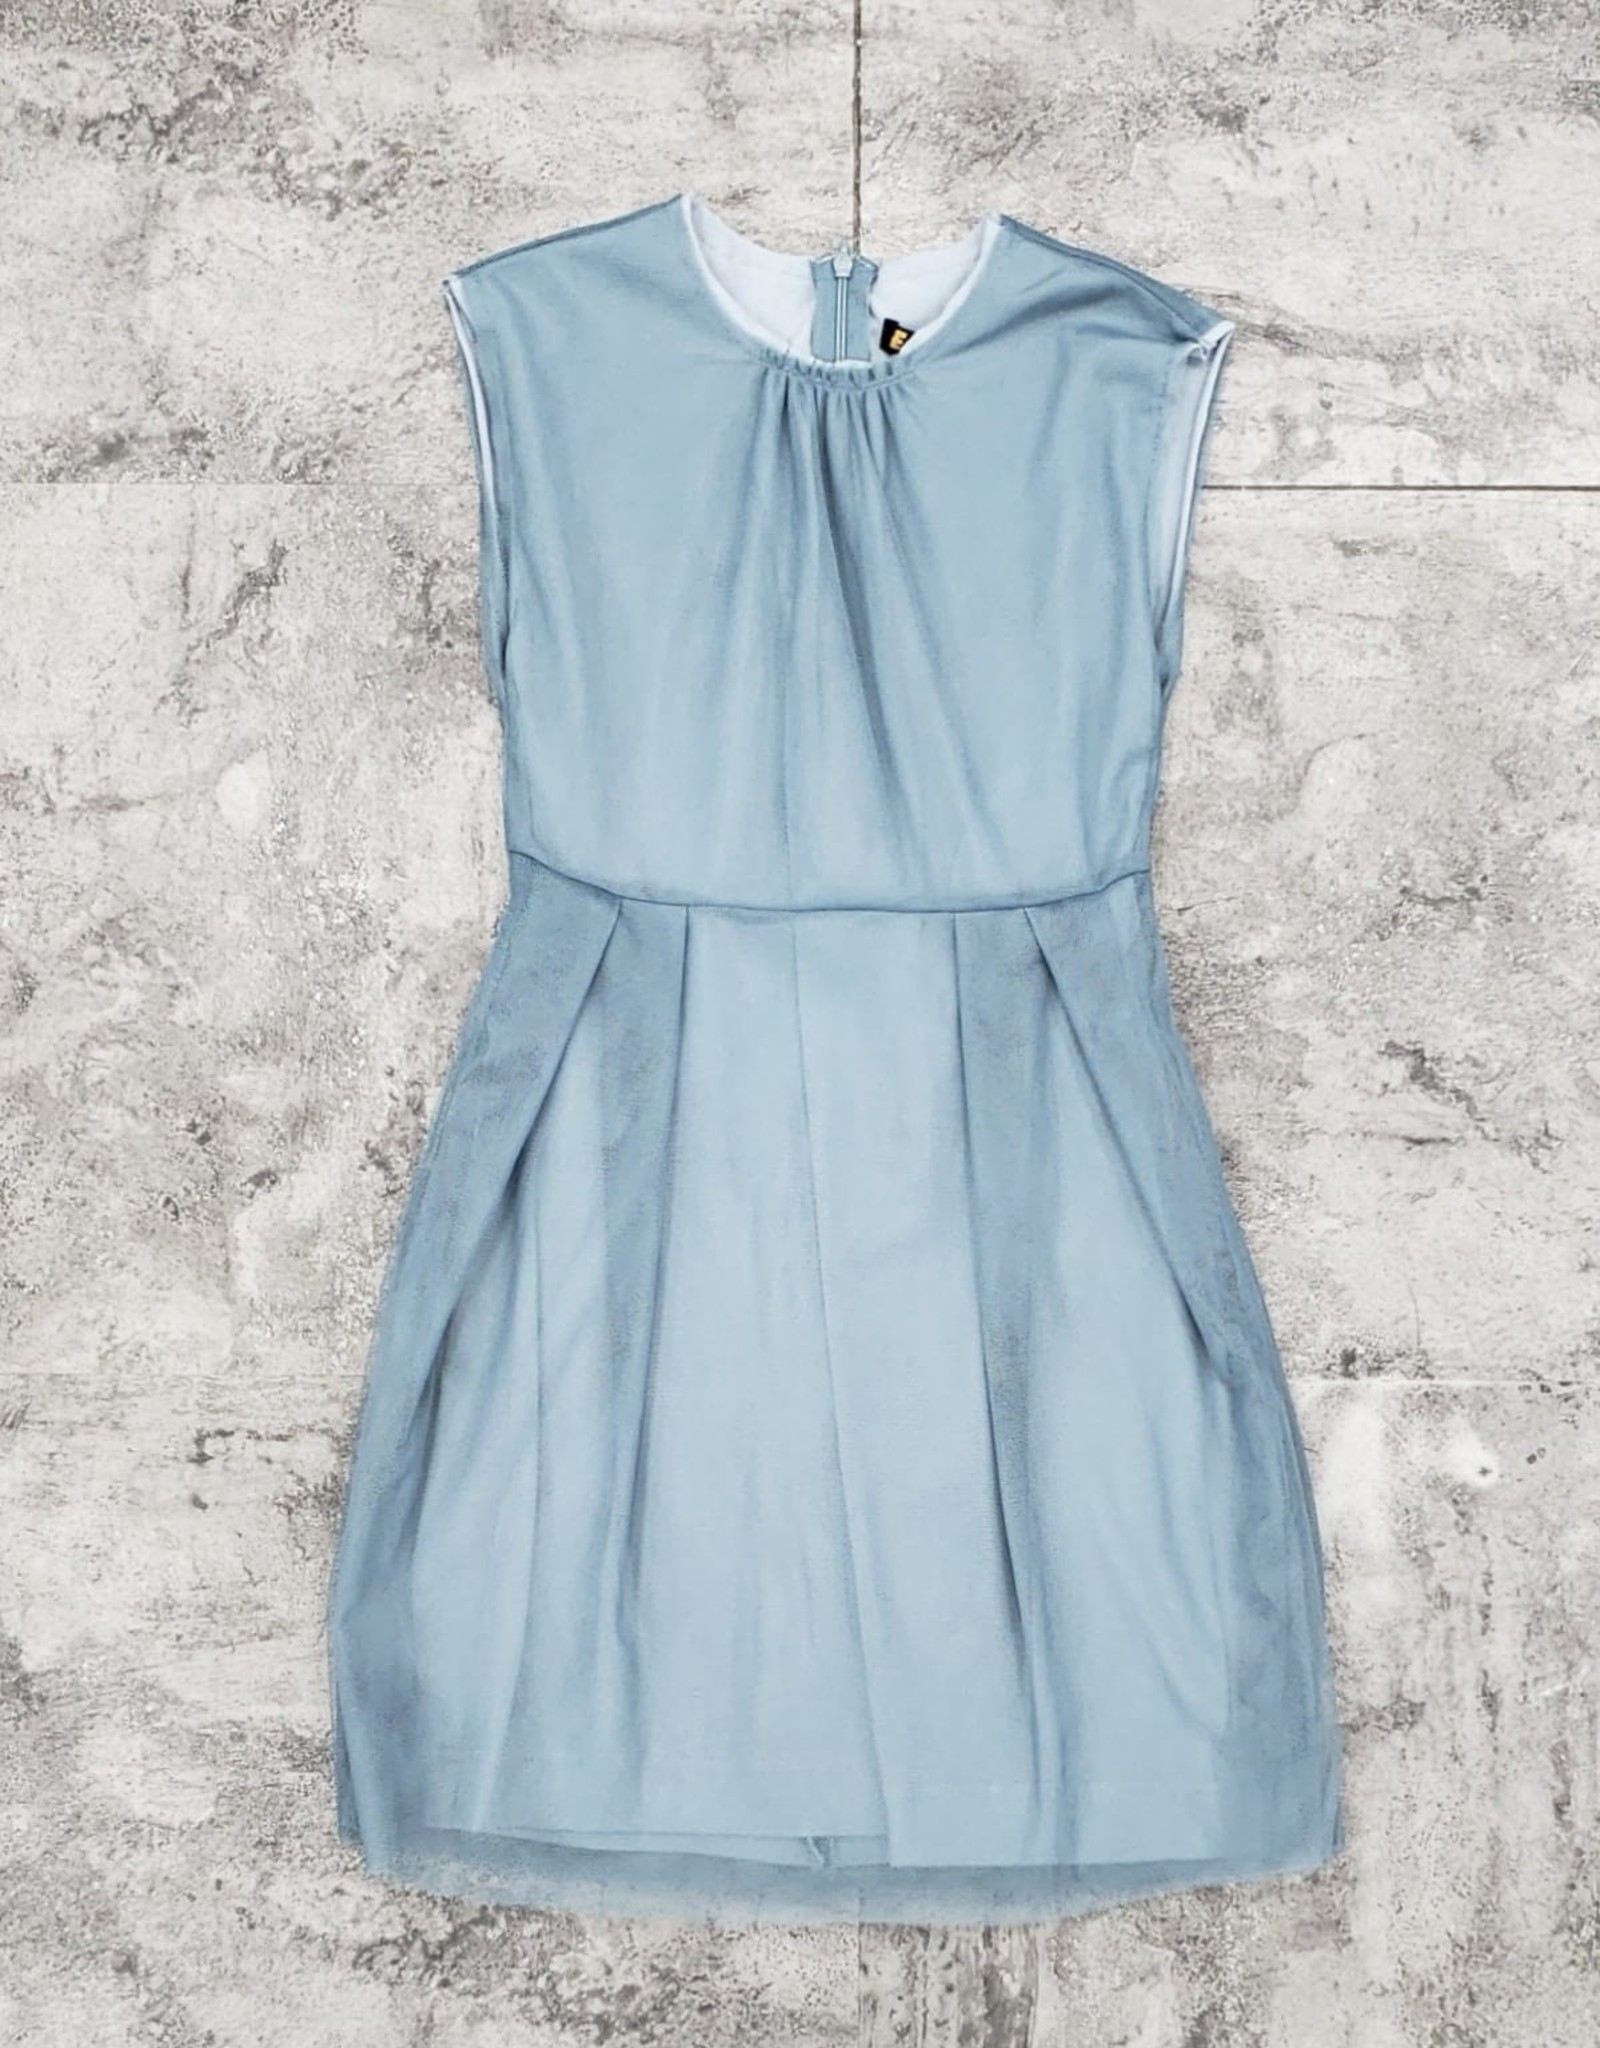 The mEE dress The mEE dress Tulle Jumper